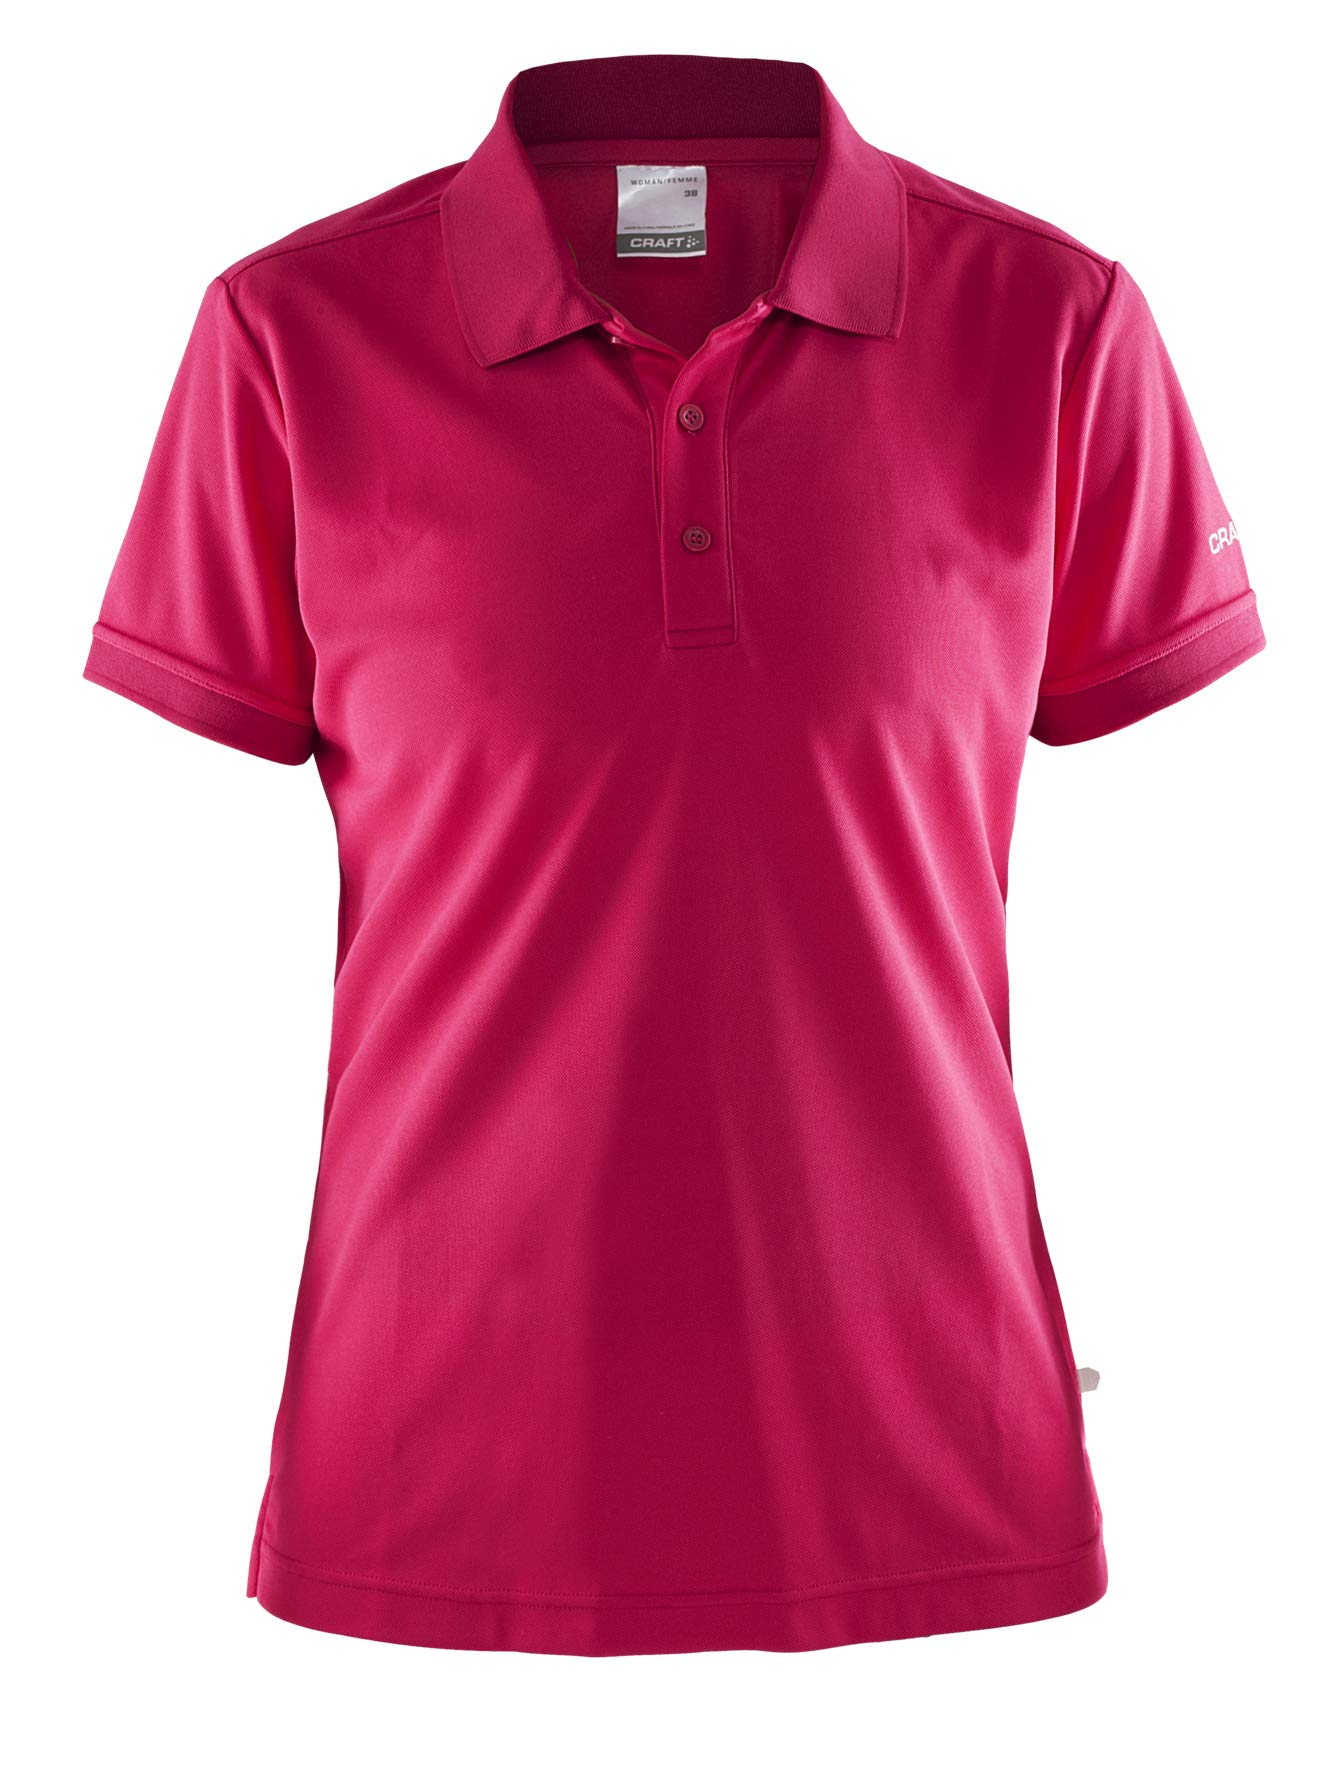 Craft Women's Polo Shirt Classic Button Style Workout Top, Dry Fit Golf T